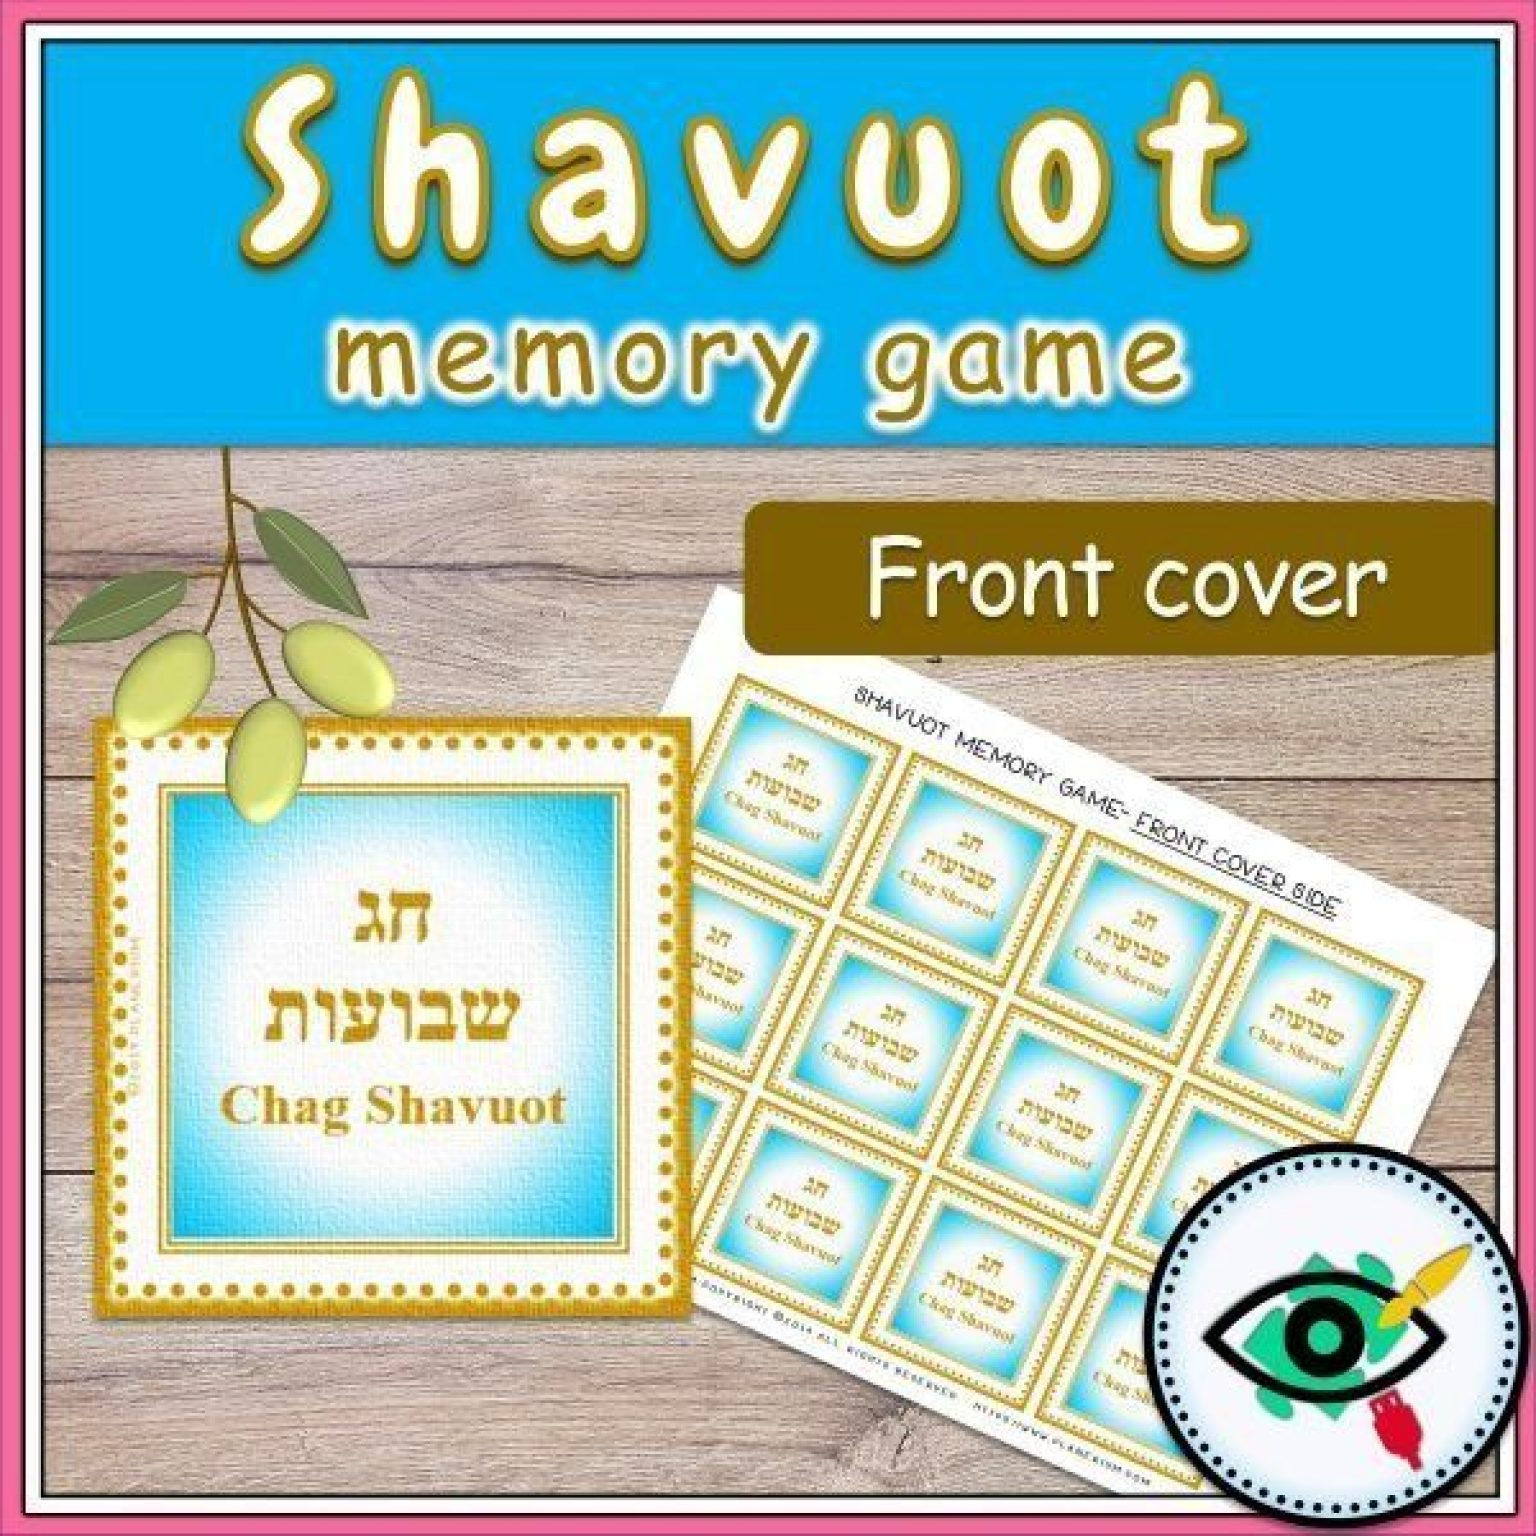 shavuot-memory-game-title1